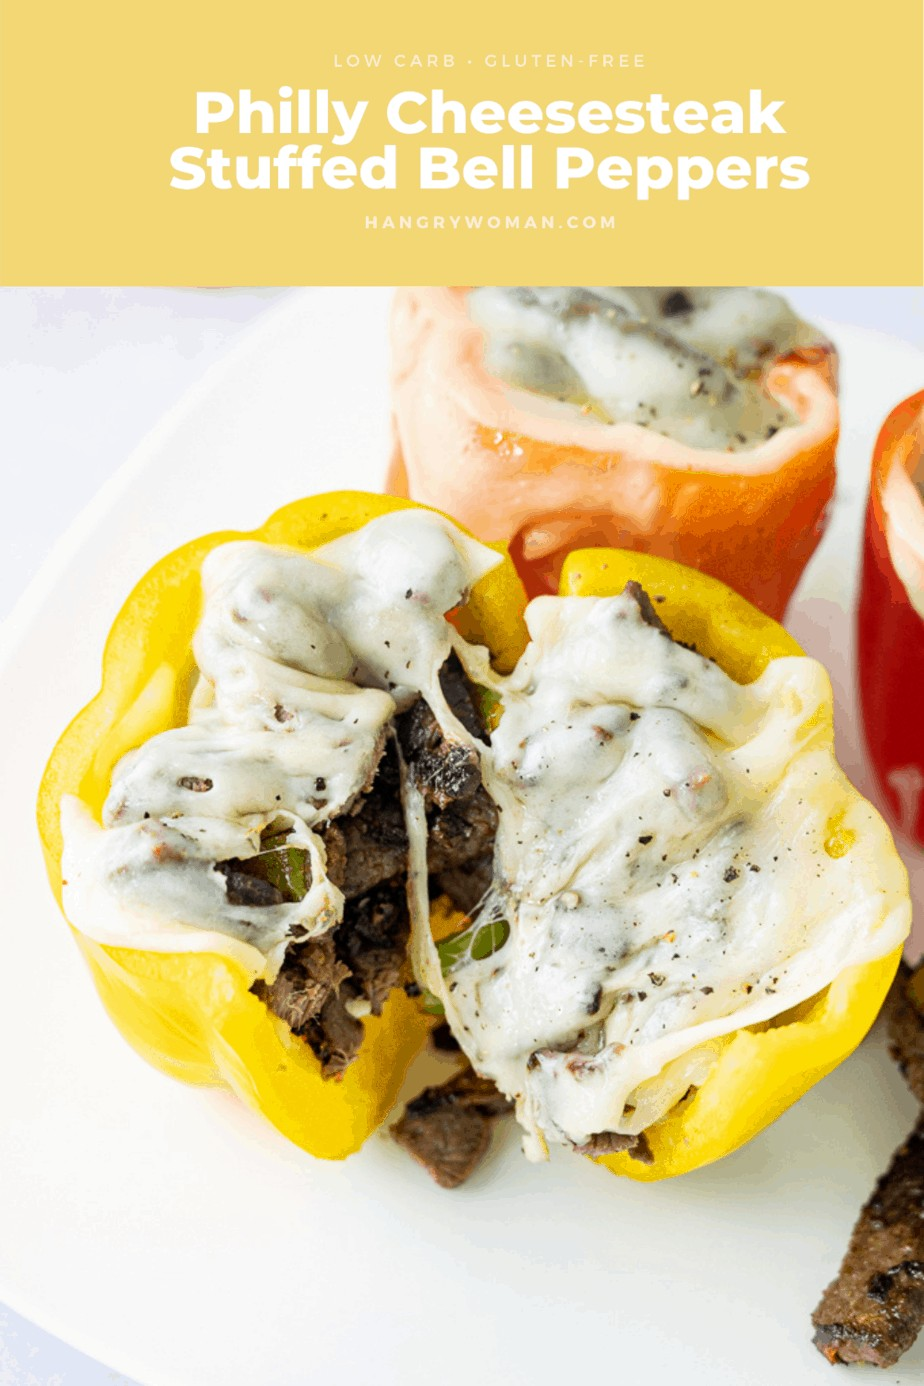 meat and cheese stuffed inside of a pepper.